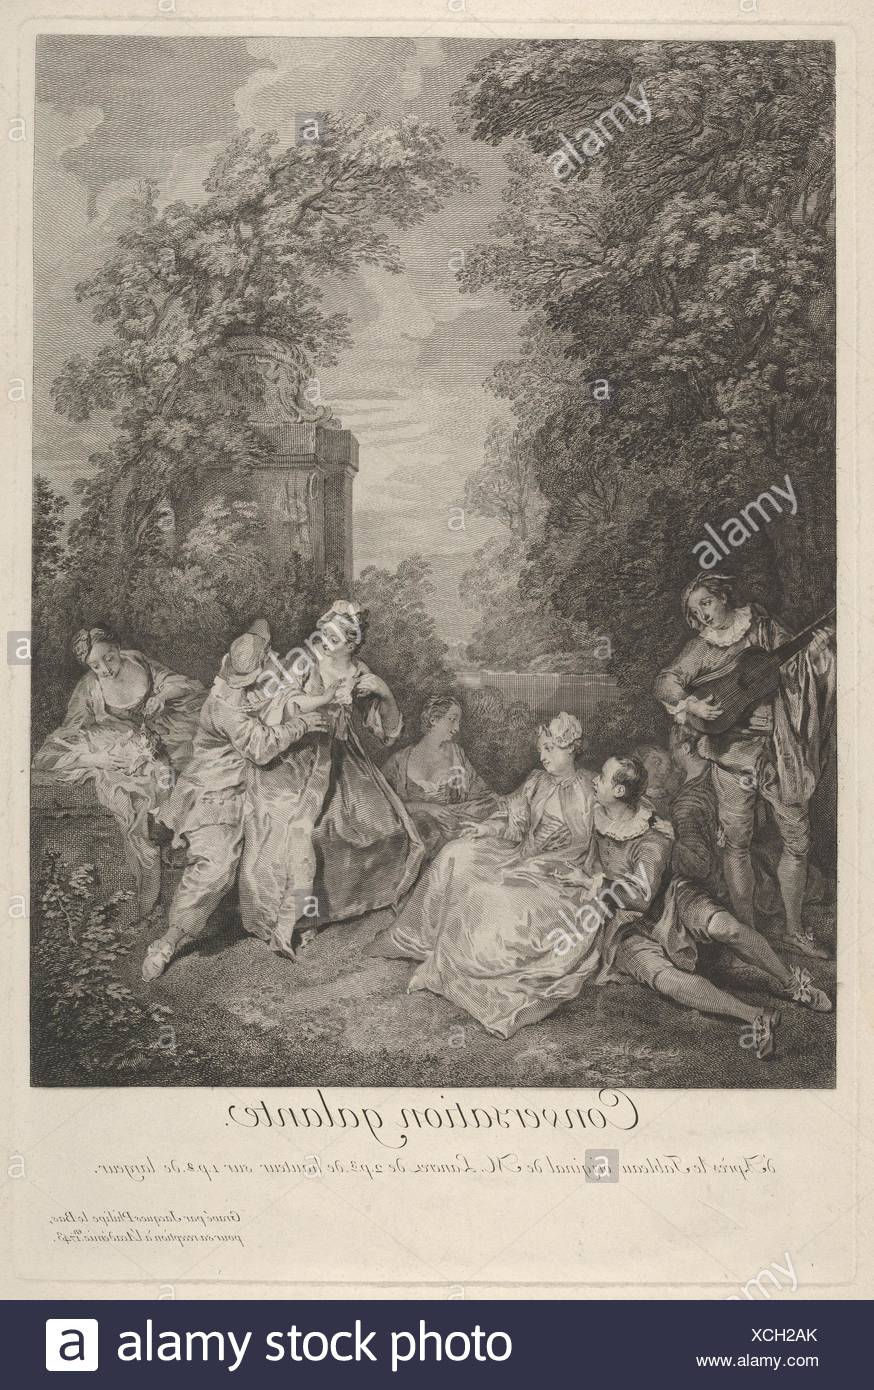 'Gallant conversation' (Conversation galante): couples engage in conversation in a garden setting, at left a musician plays for the group, at right a - Stock Image